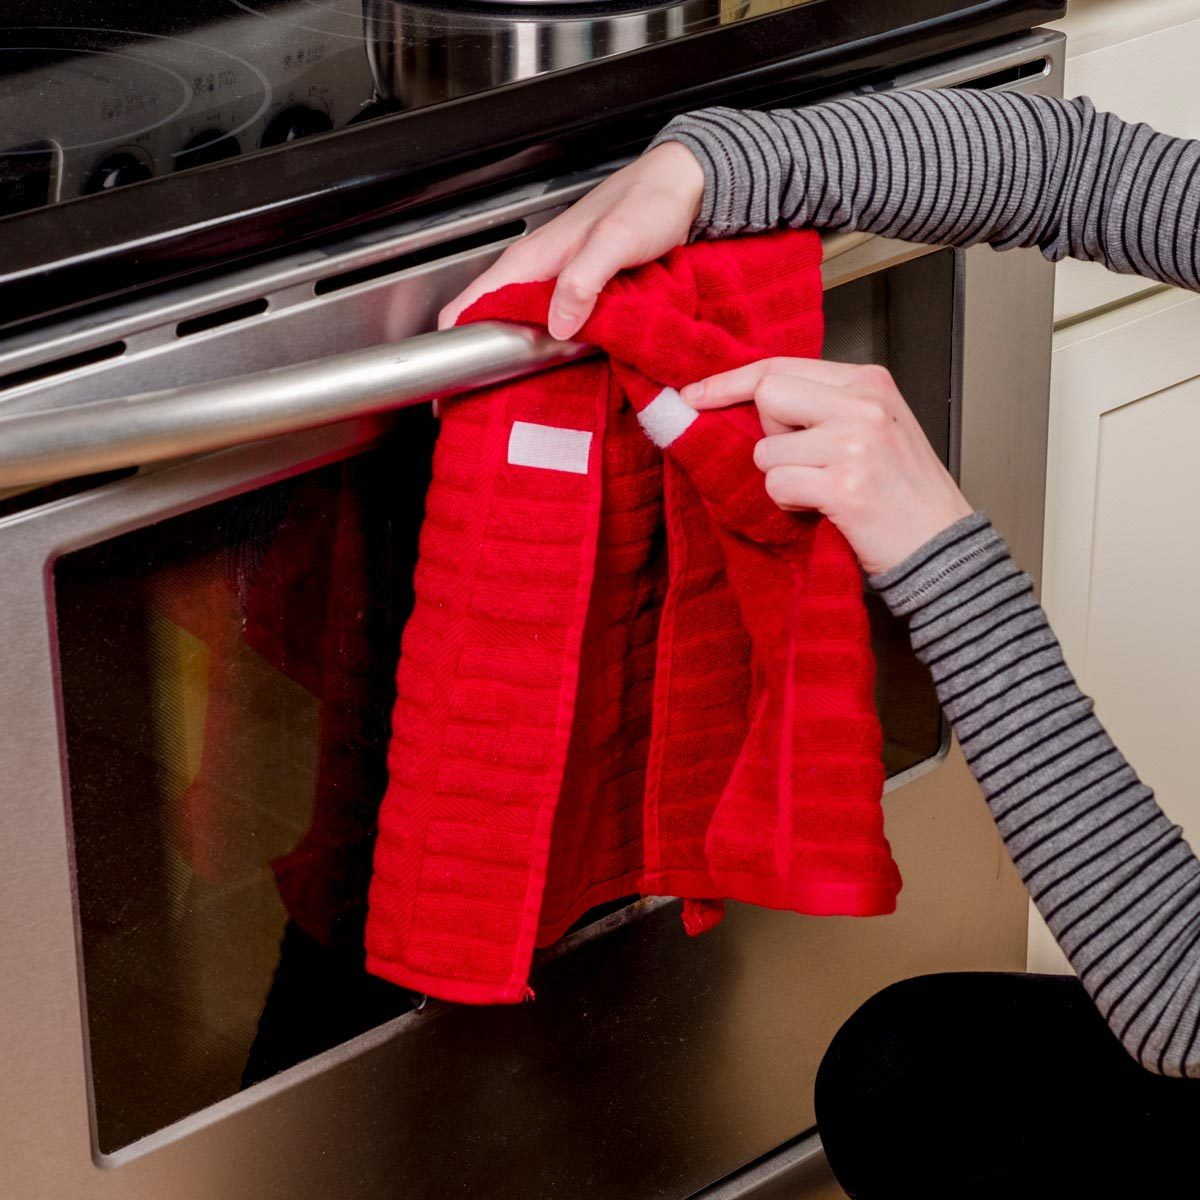 Secure Your Kitchen Towels